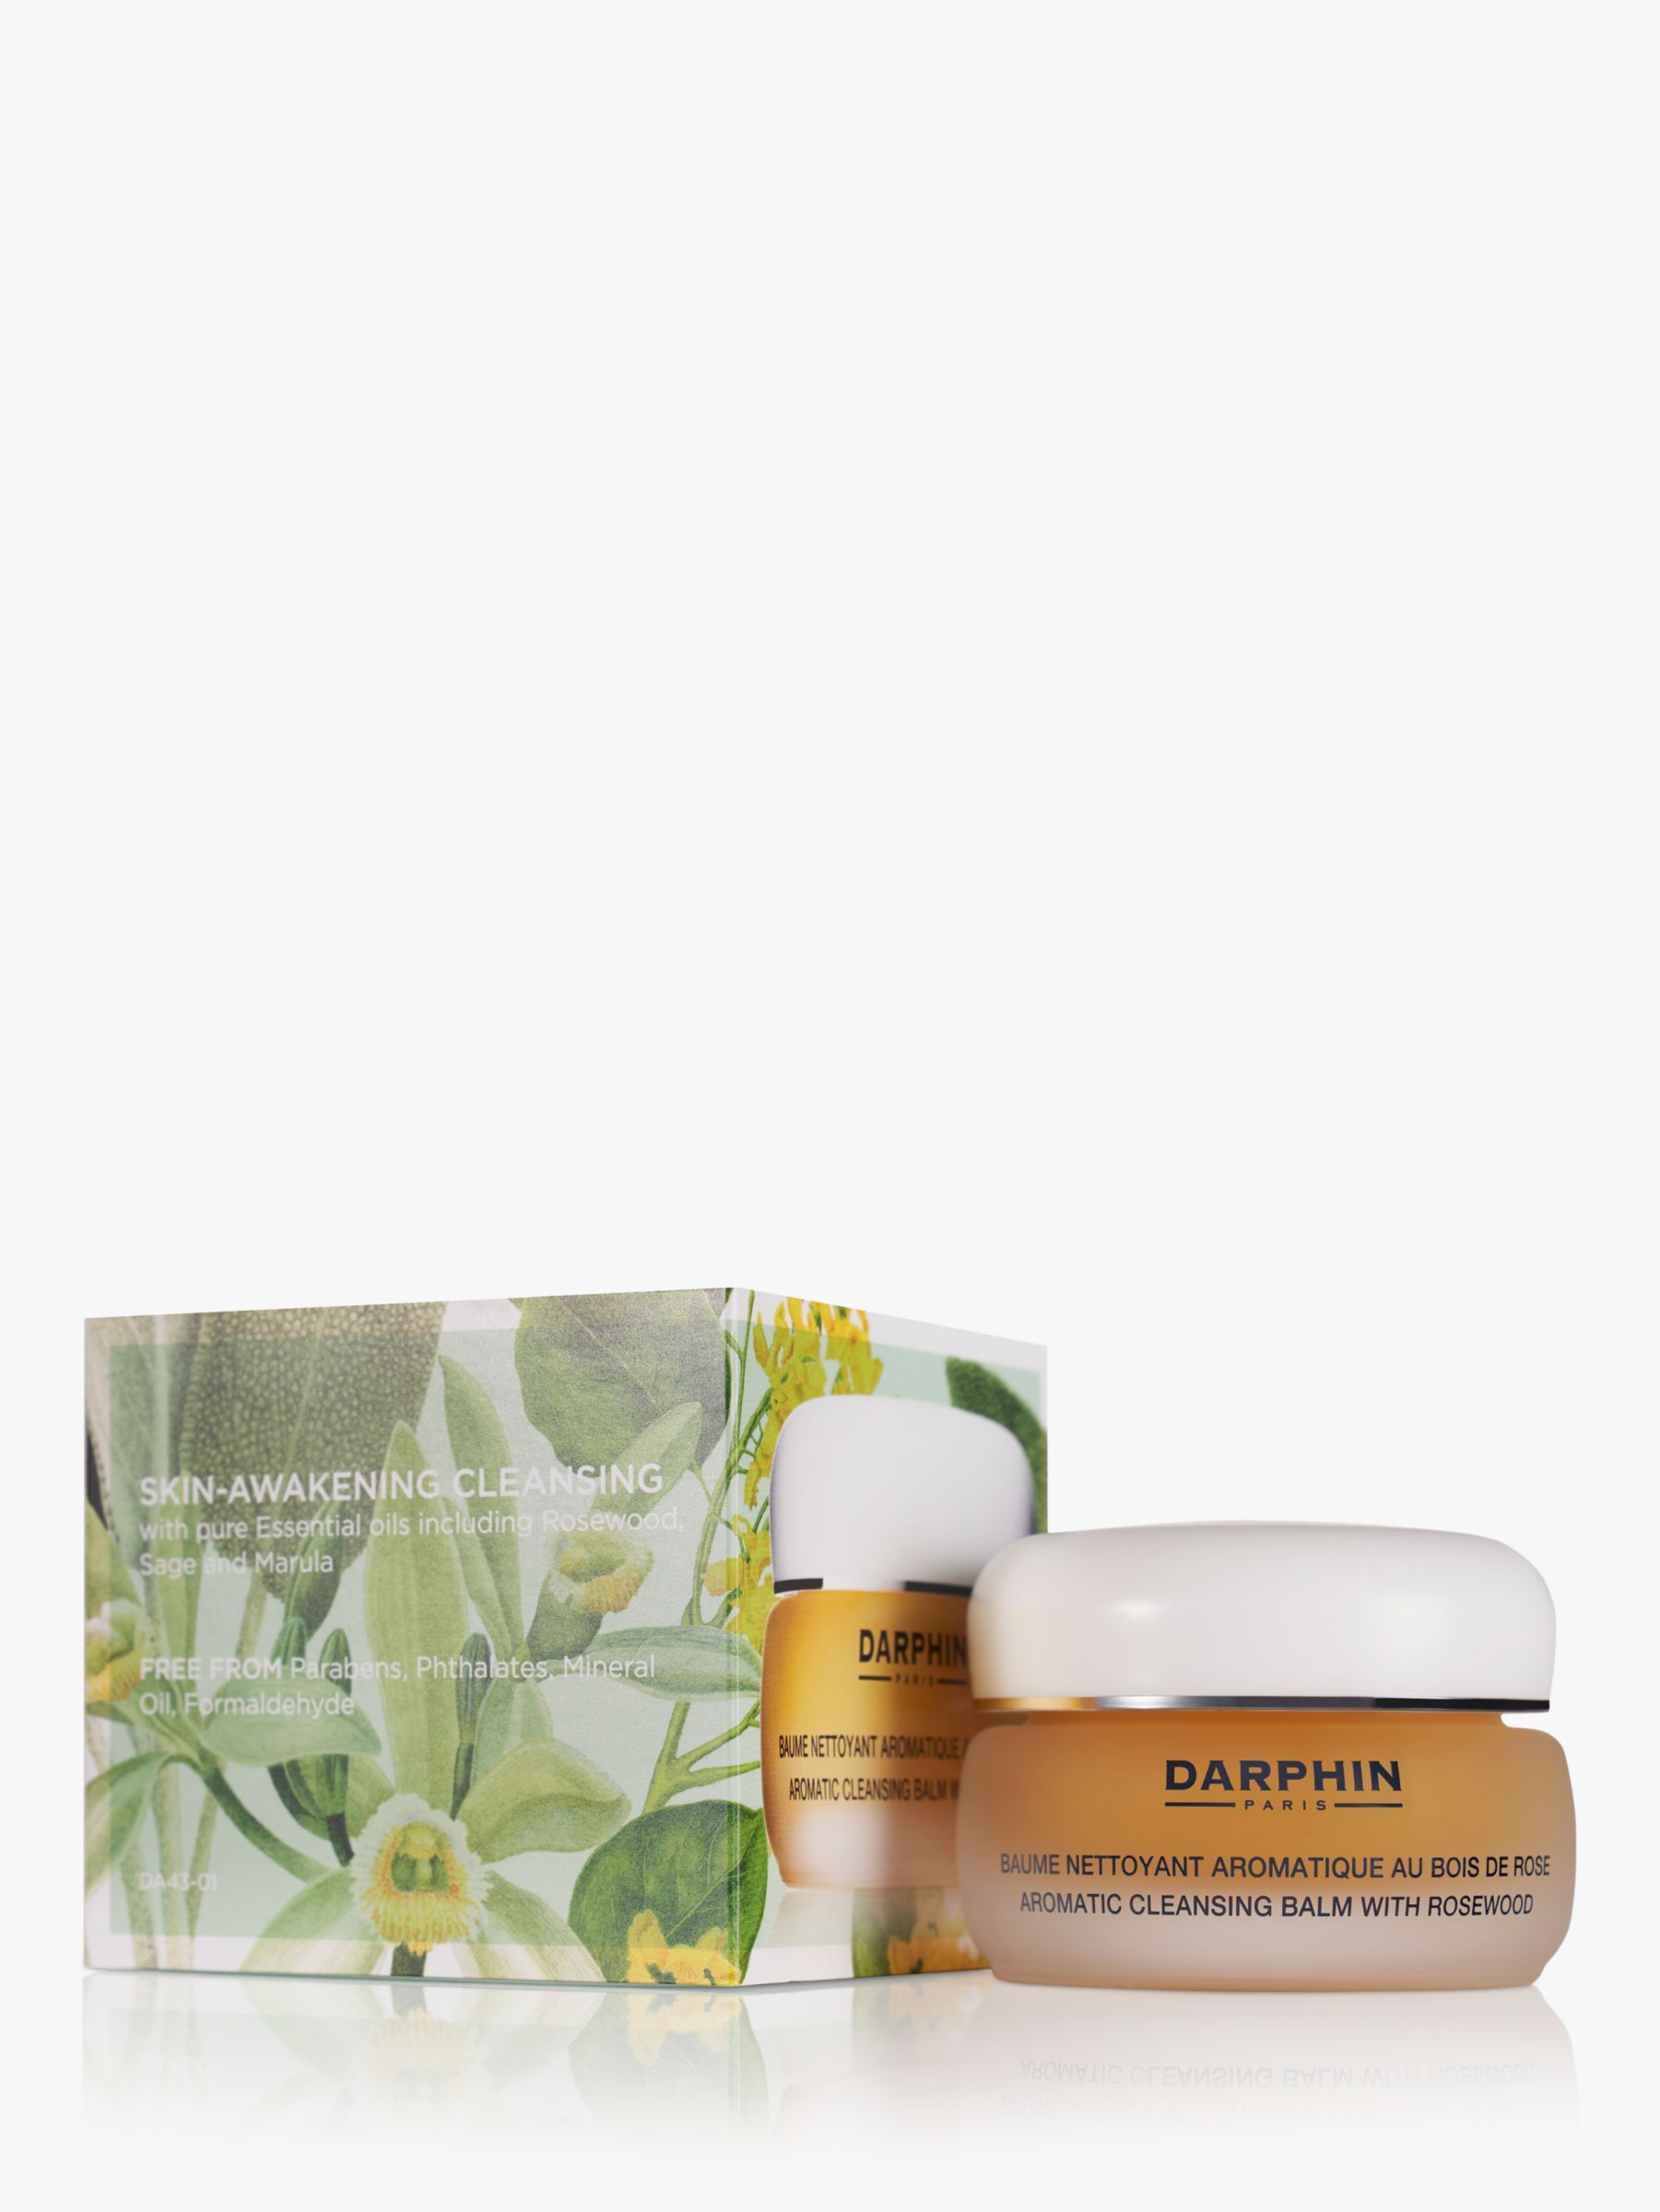 Darphin Aromatic Cleansing Balm, 40ml